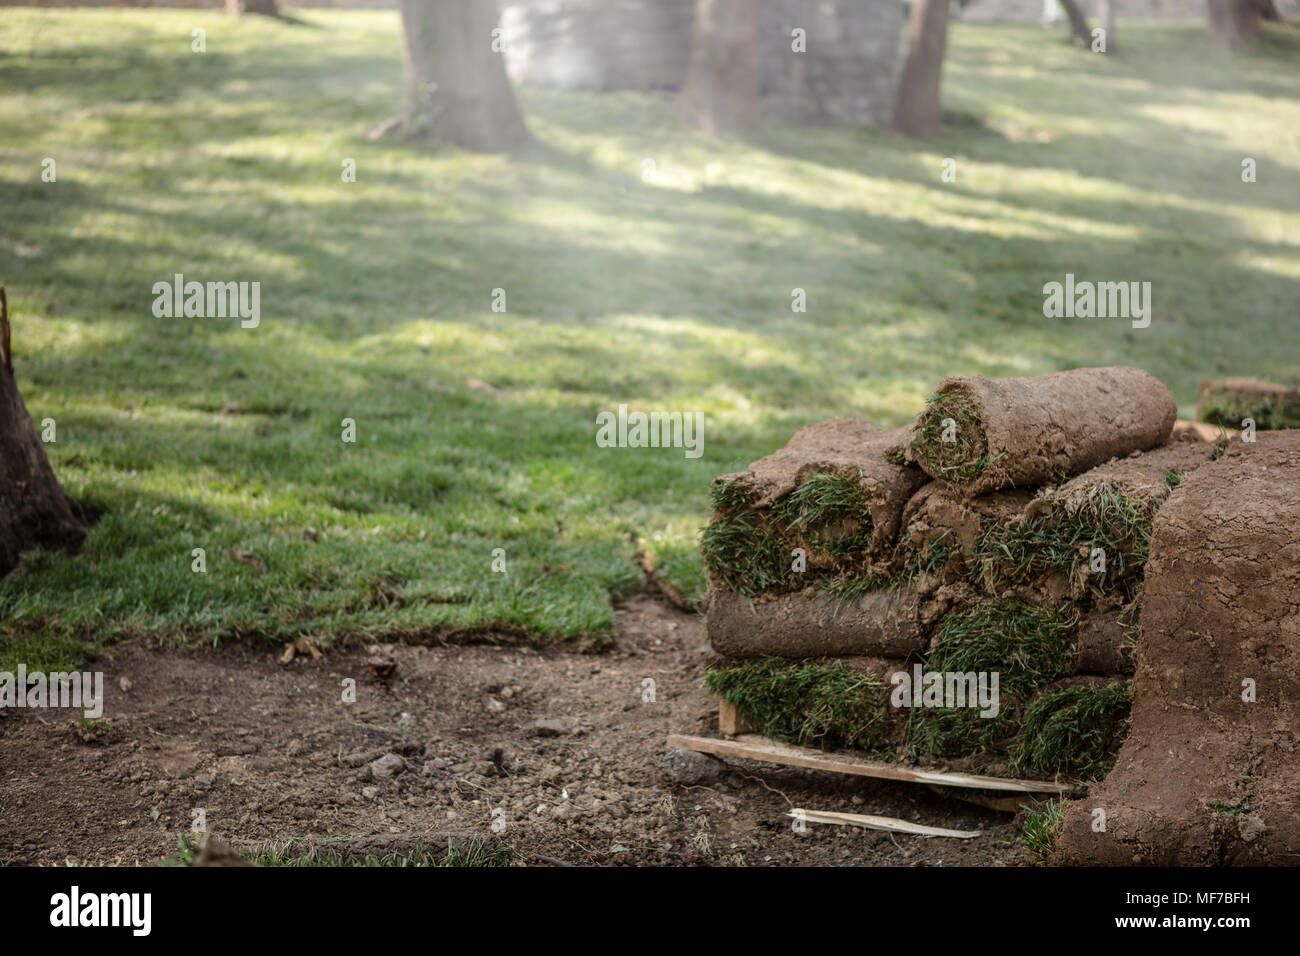 New green turf grass rolls stacked in a pile on wooden pallets ready